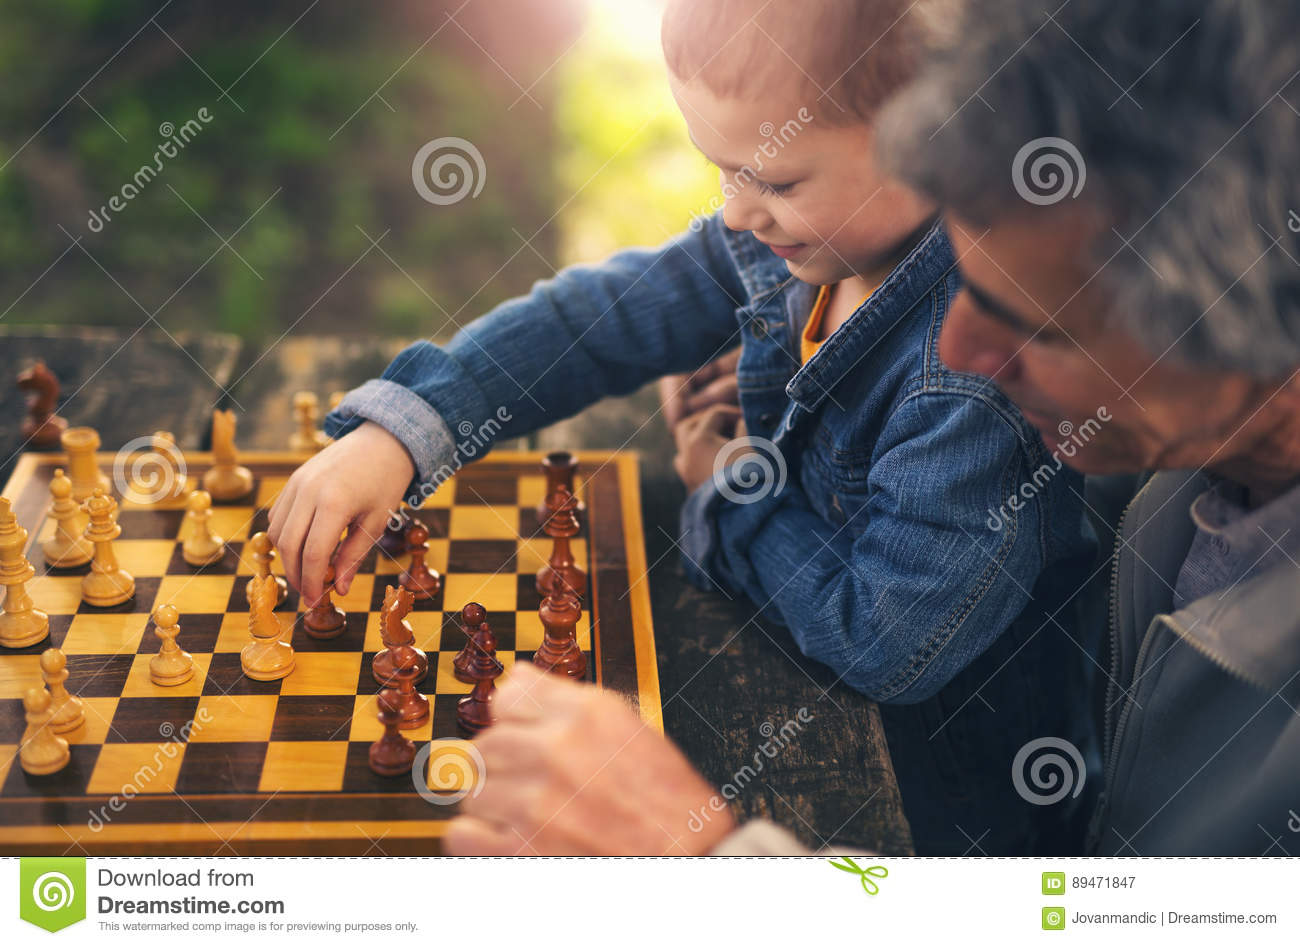 Senior men having fun and playing chess at park, spend time with grandson